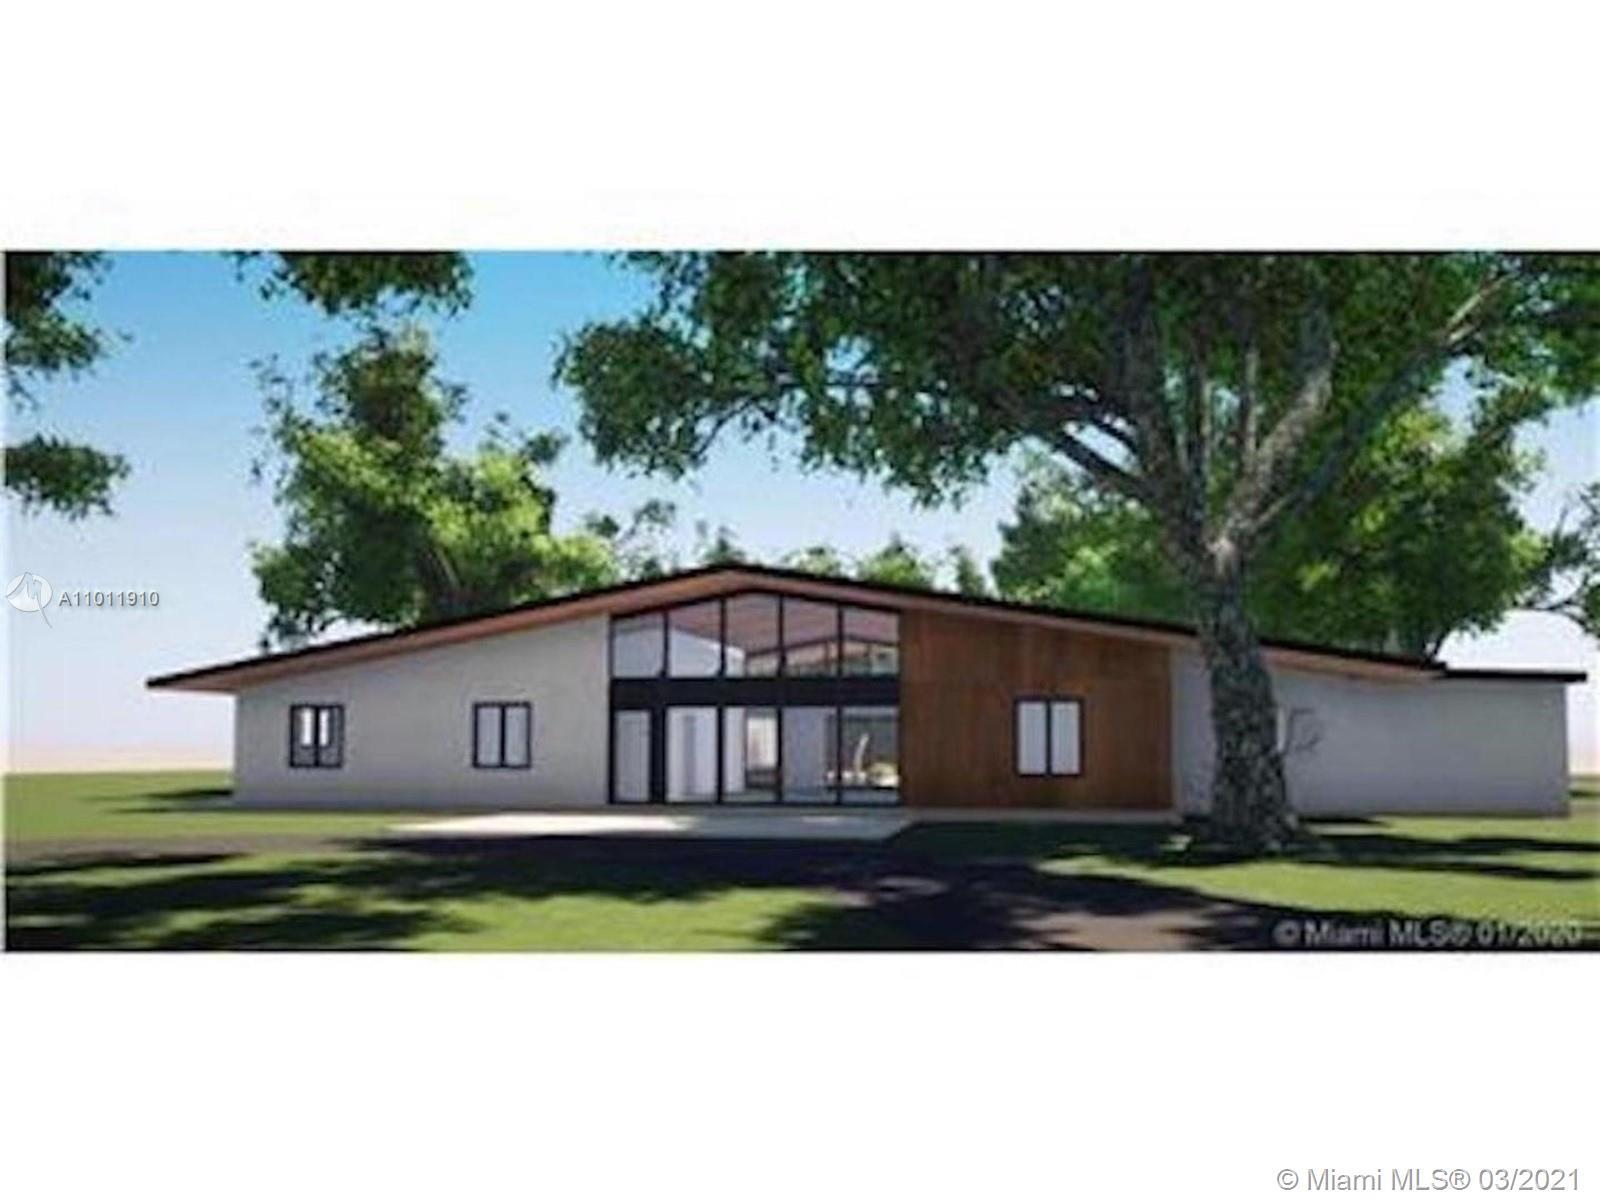 PRE-CONSTRUCTION TO BE COMPLETED IN JUNE. TOTAL OF 5,408 SQF. This luxurious home in the North neigh